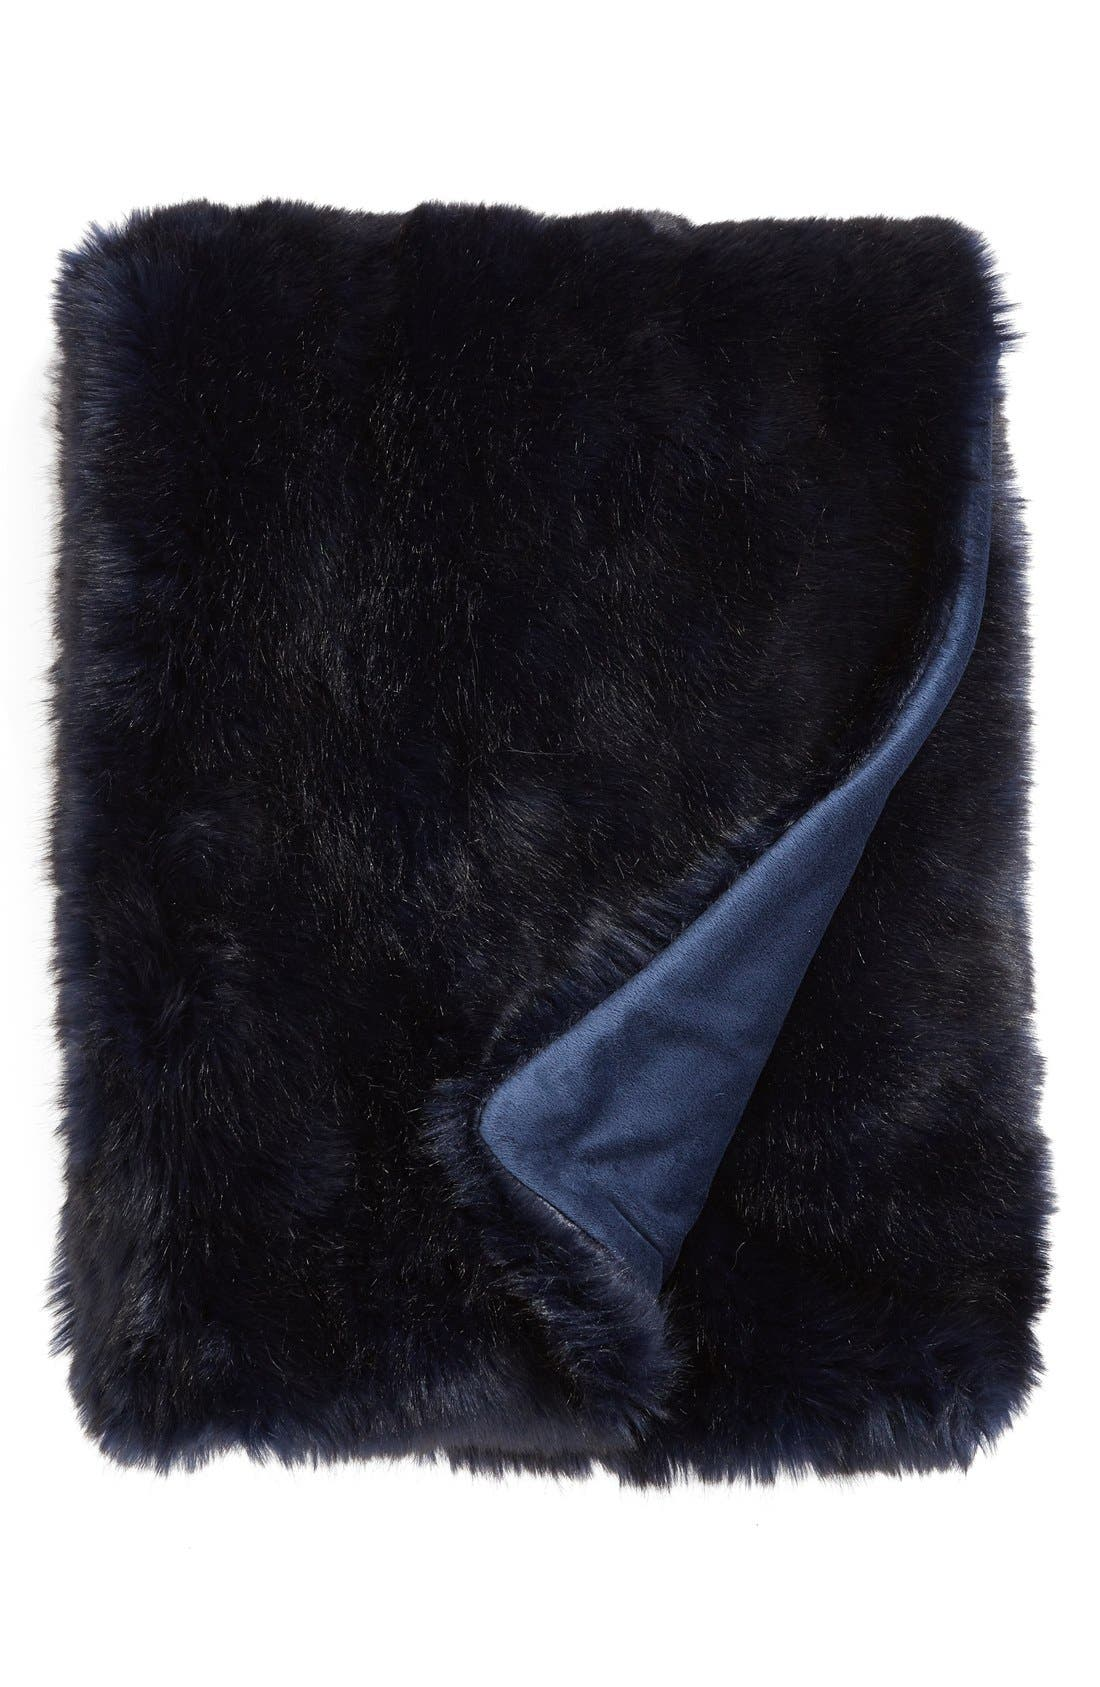 Cuddle Up Faux Fur Throw Blanket,                             Main thumbnail 14, color,